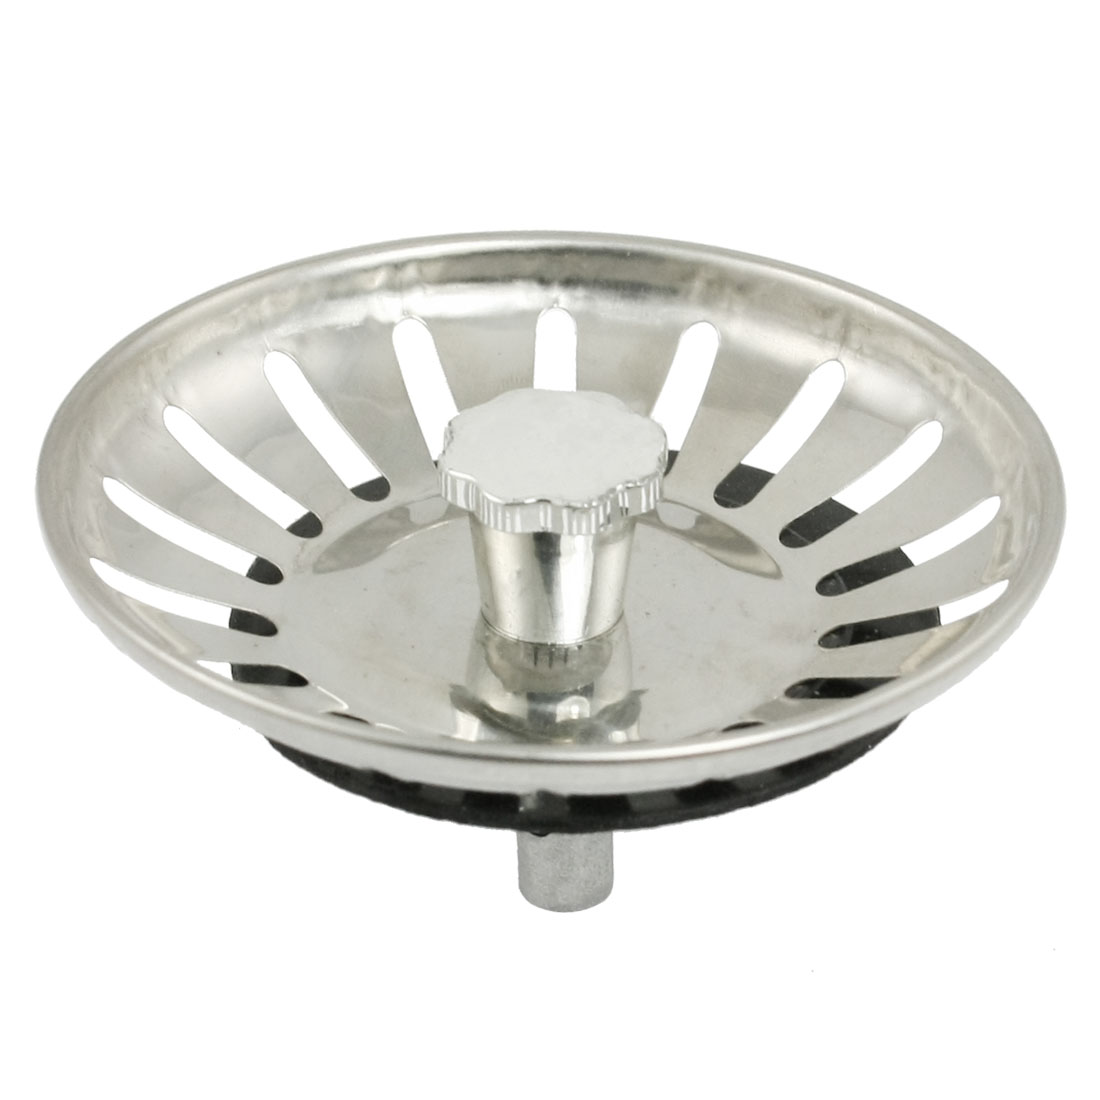 "3"" Dia Metal Kitchen Sink Strainer Drain Stopper"